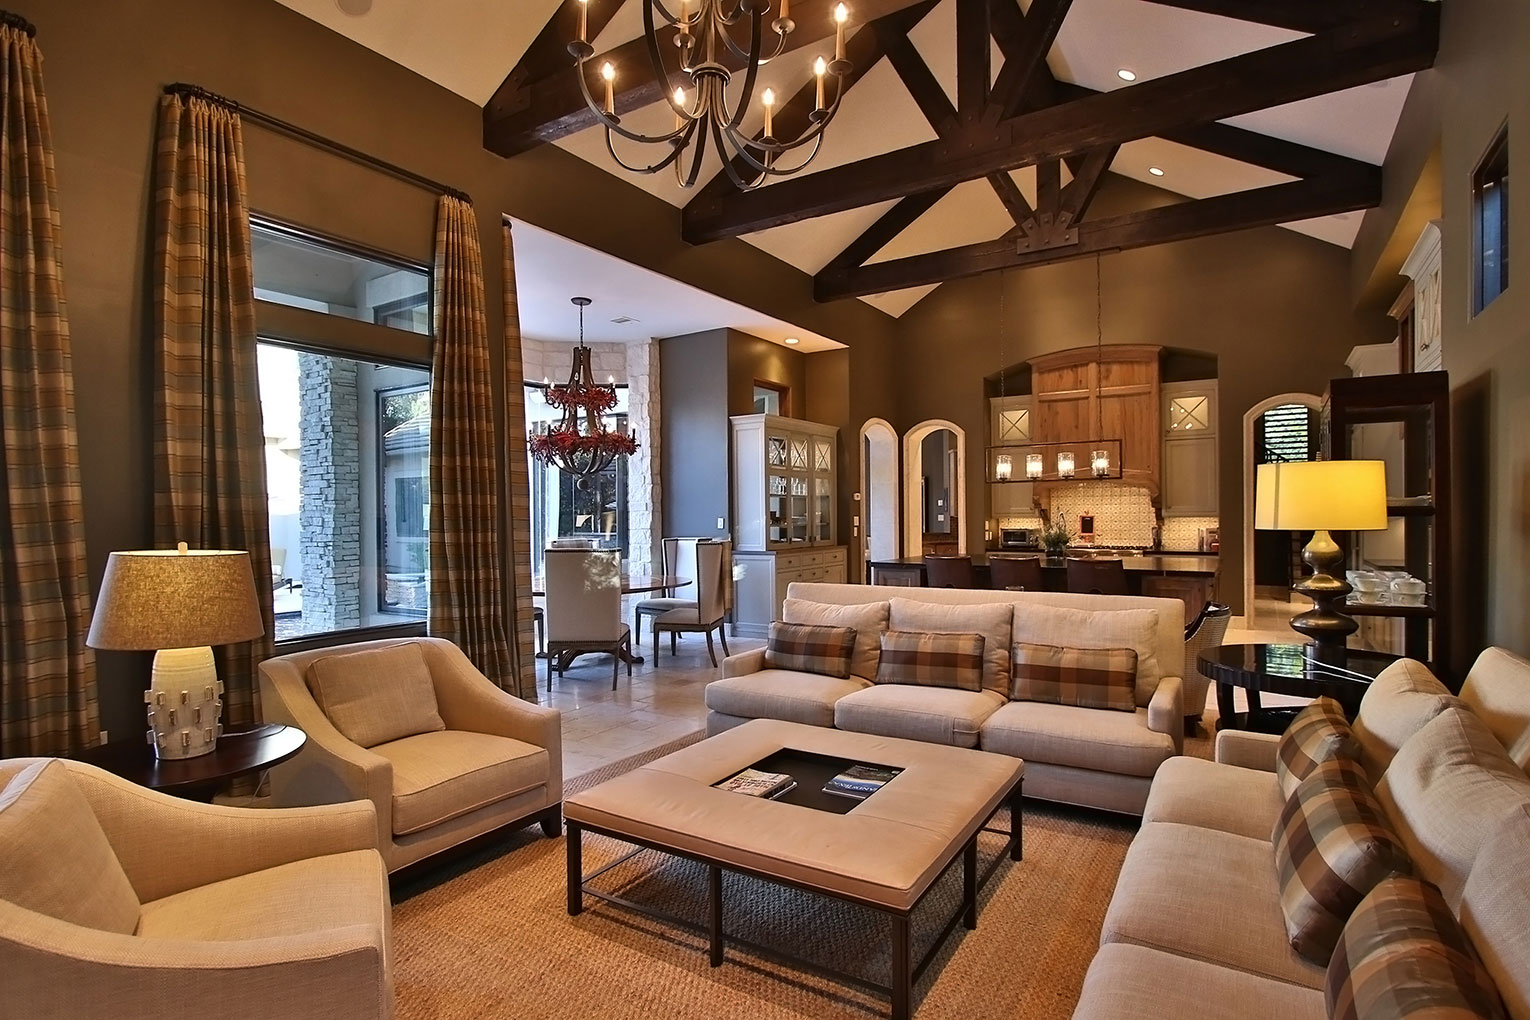 Vining design associates - Interior designs ...